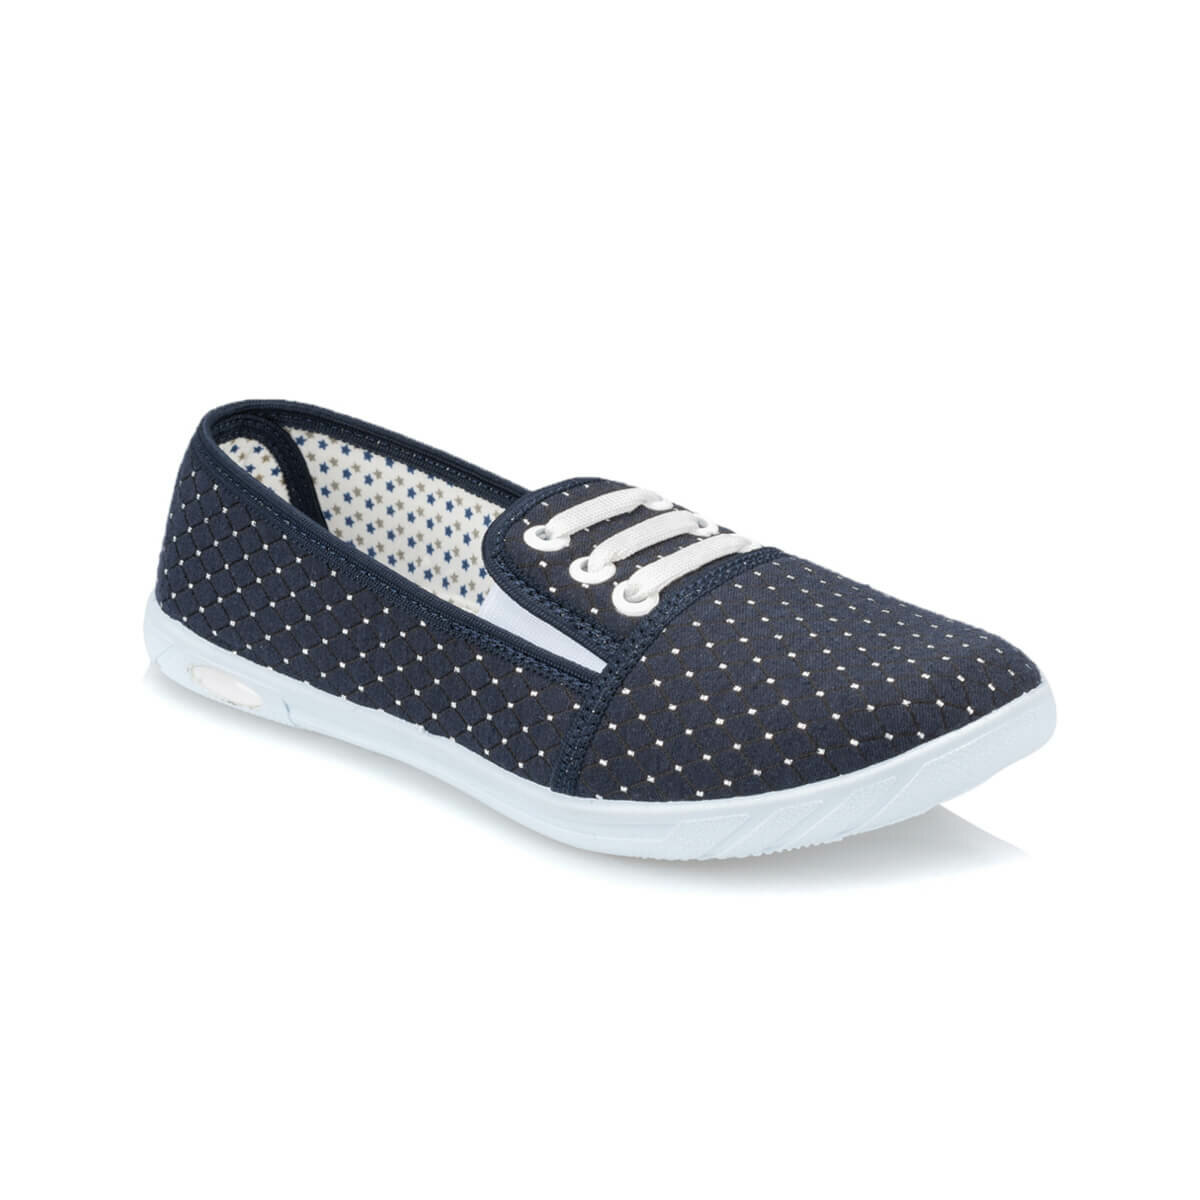 FLO 91.354989.Z Navy Blue Women 'S Slip On Shoes Polaris